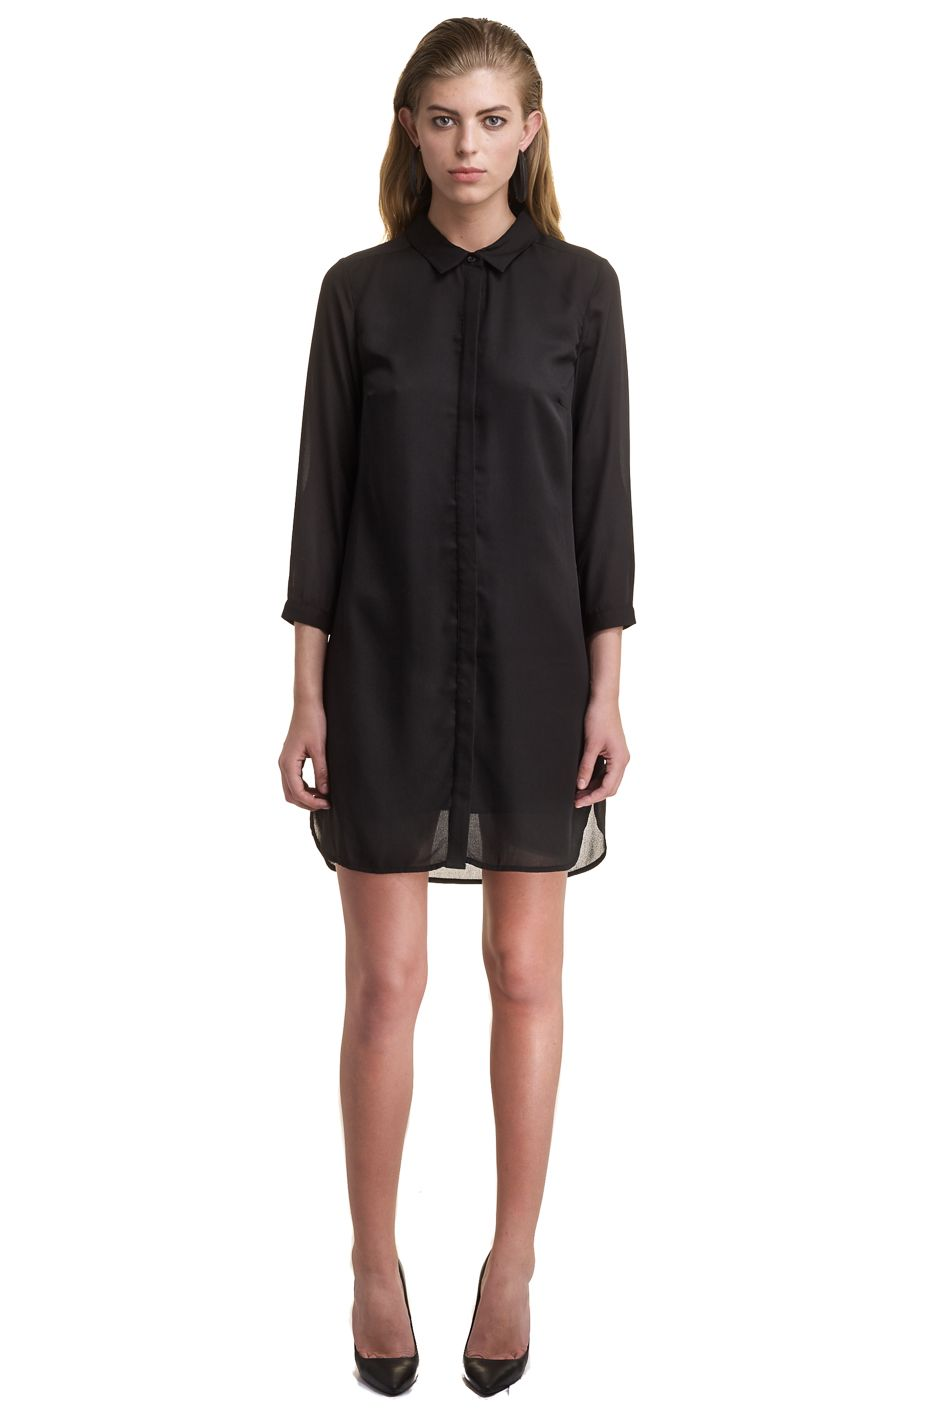 GEORGETTE SHIRT DRESS MAGNOLIA